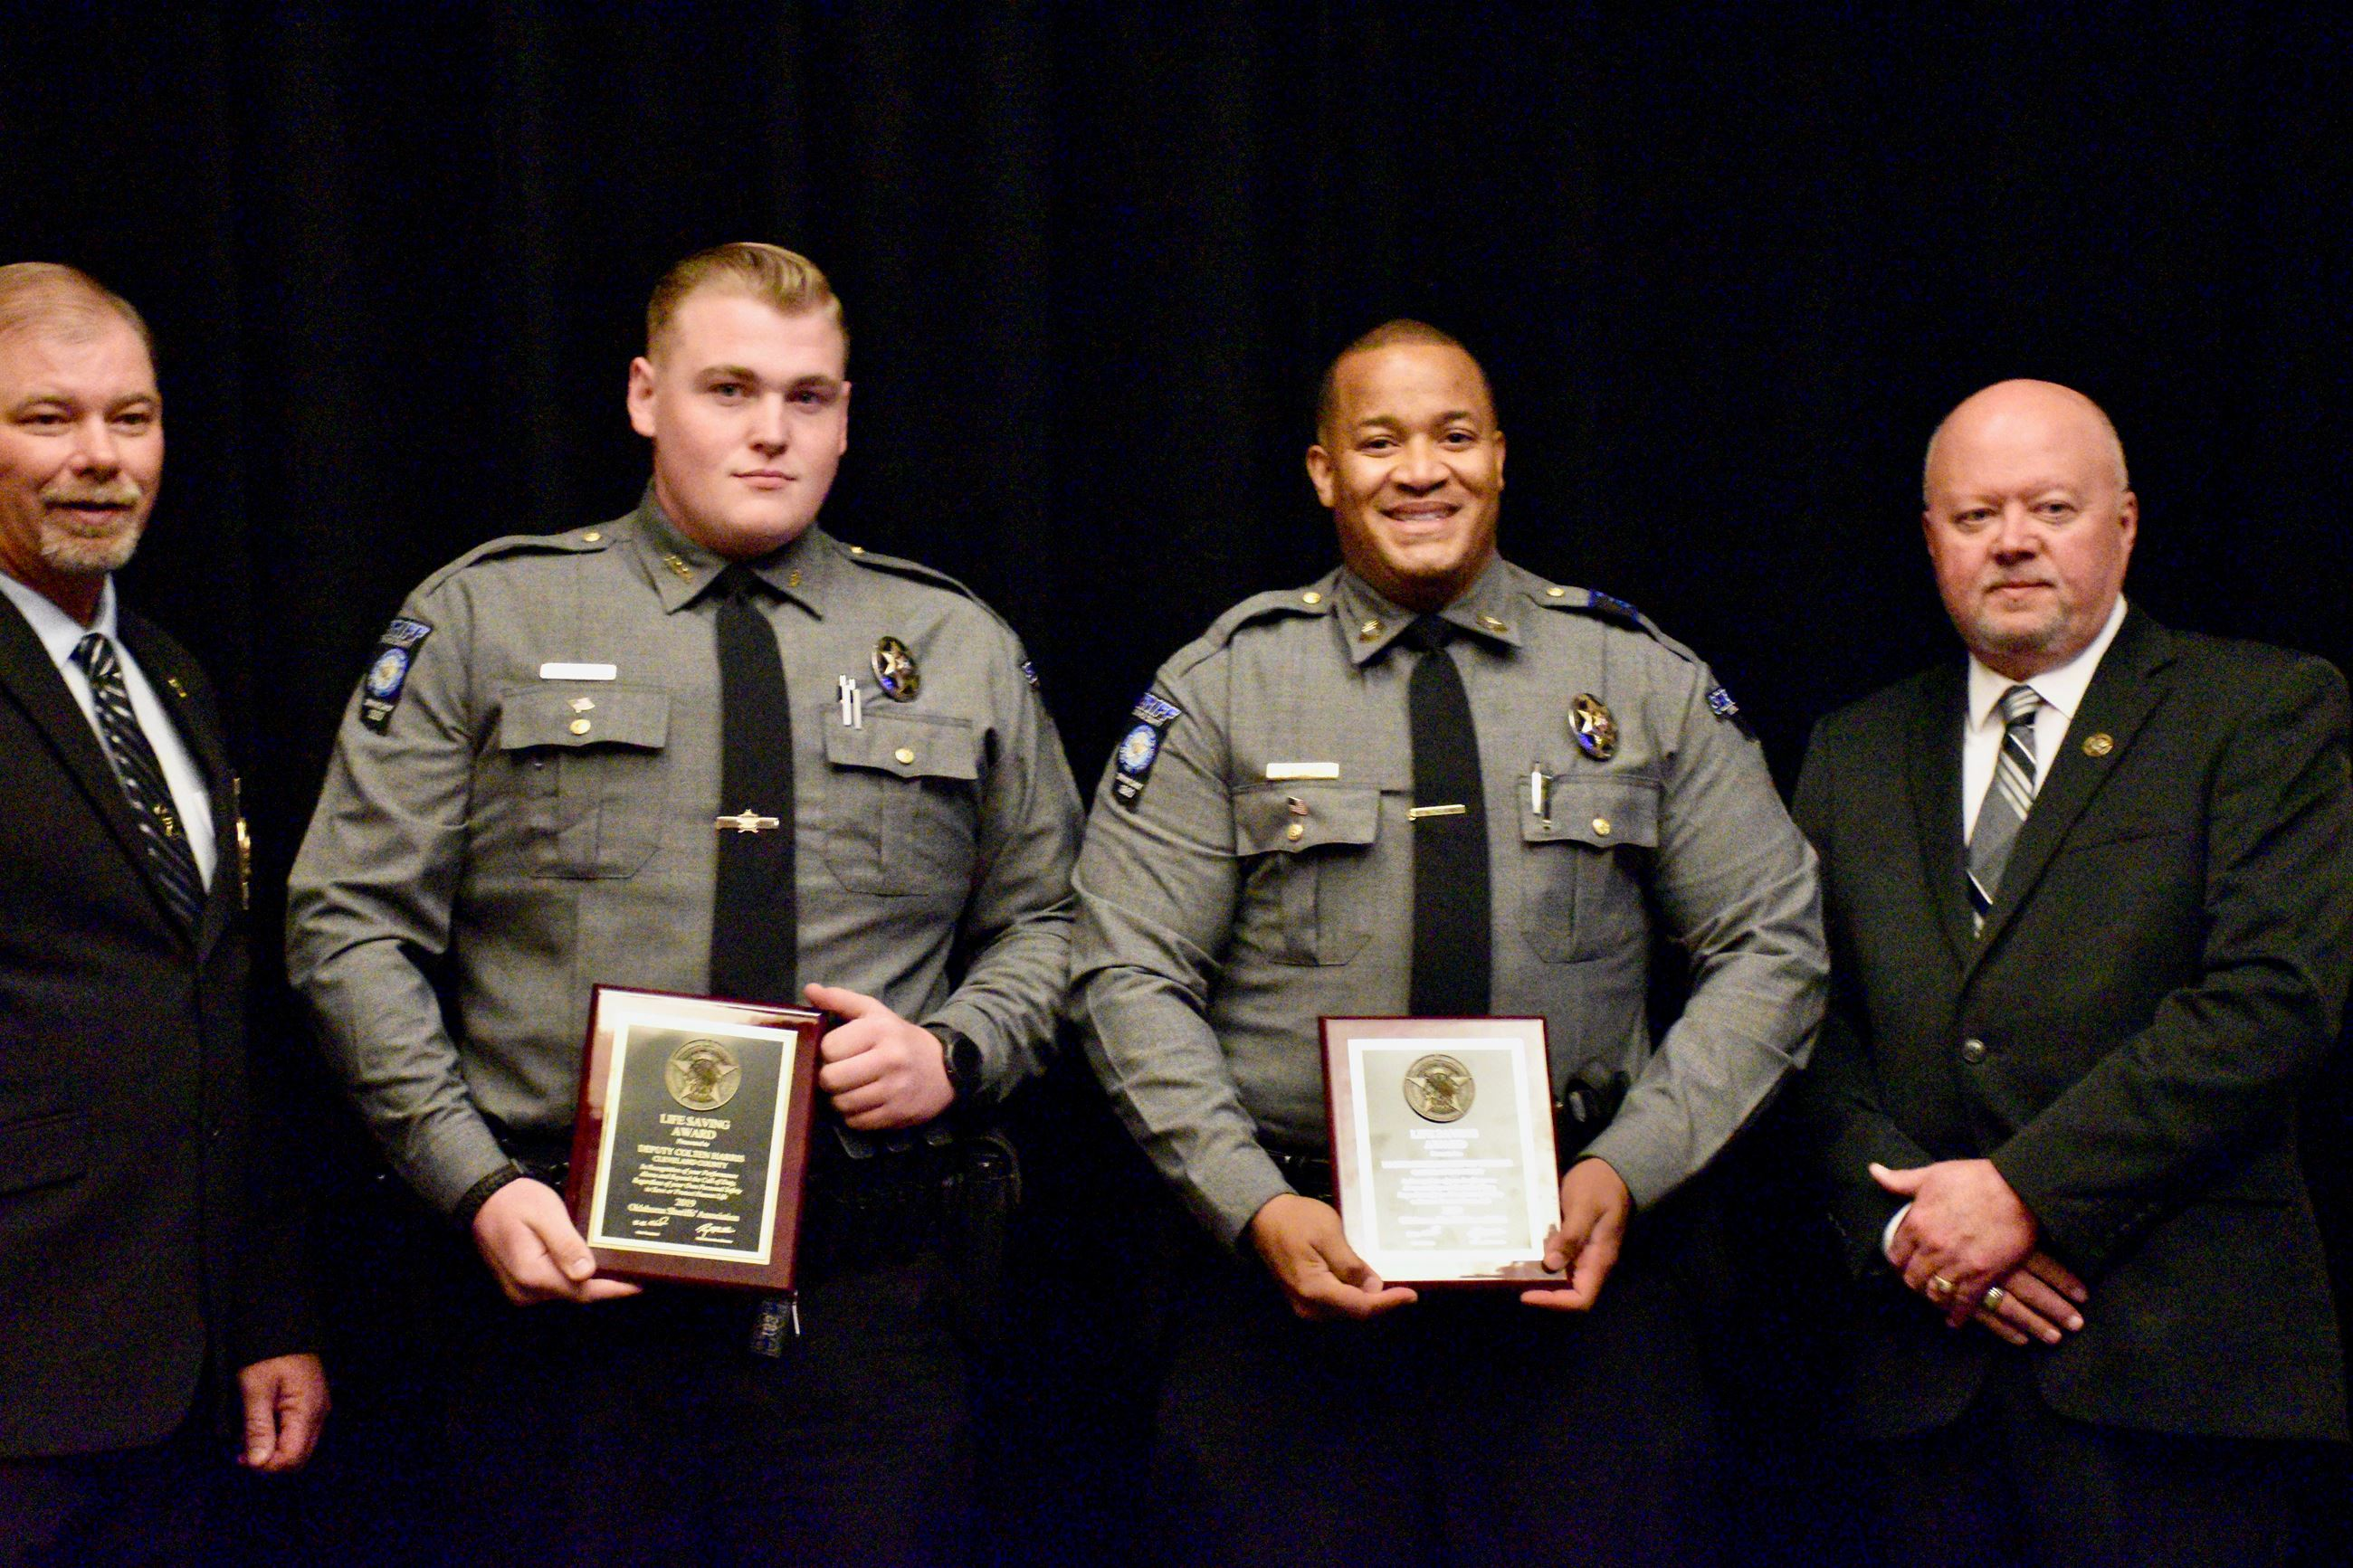 C. Harris and L. Williams honored as lifesavers